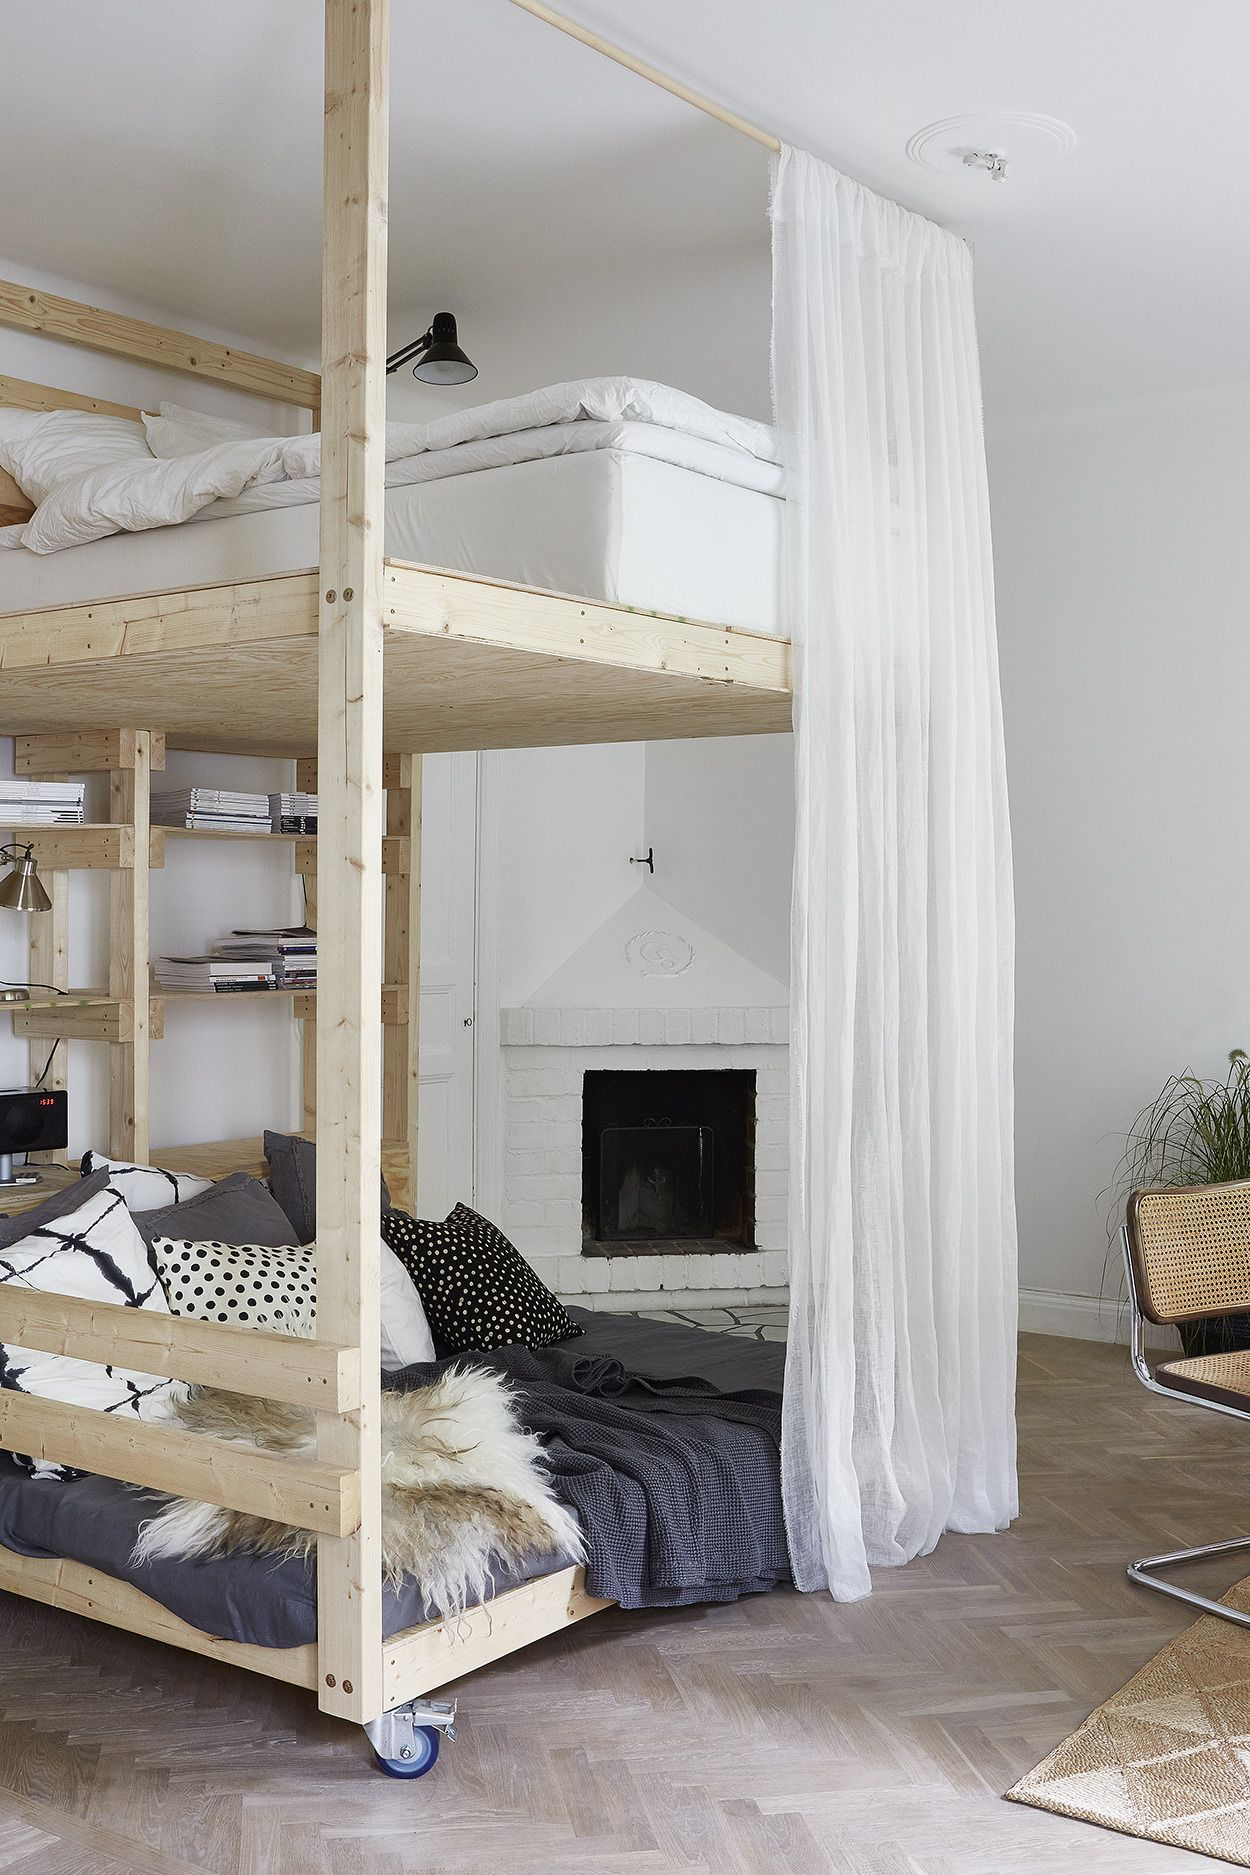 The Nordroom Studio apartment with DIY loft bed/lounge